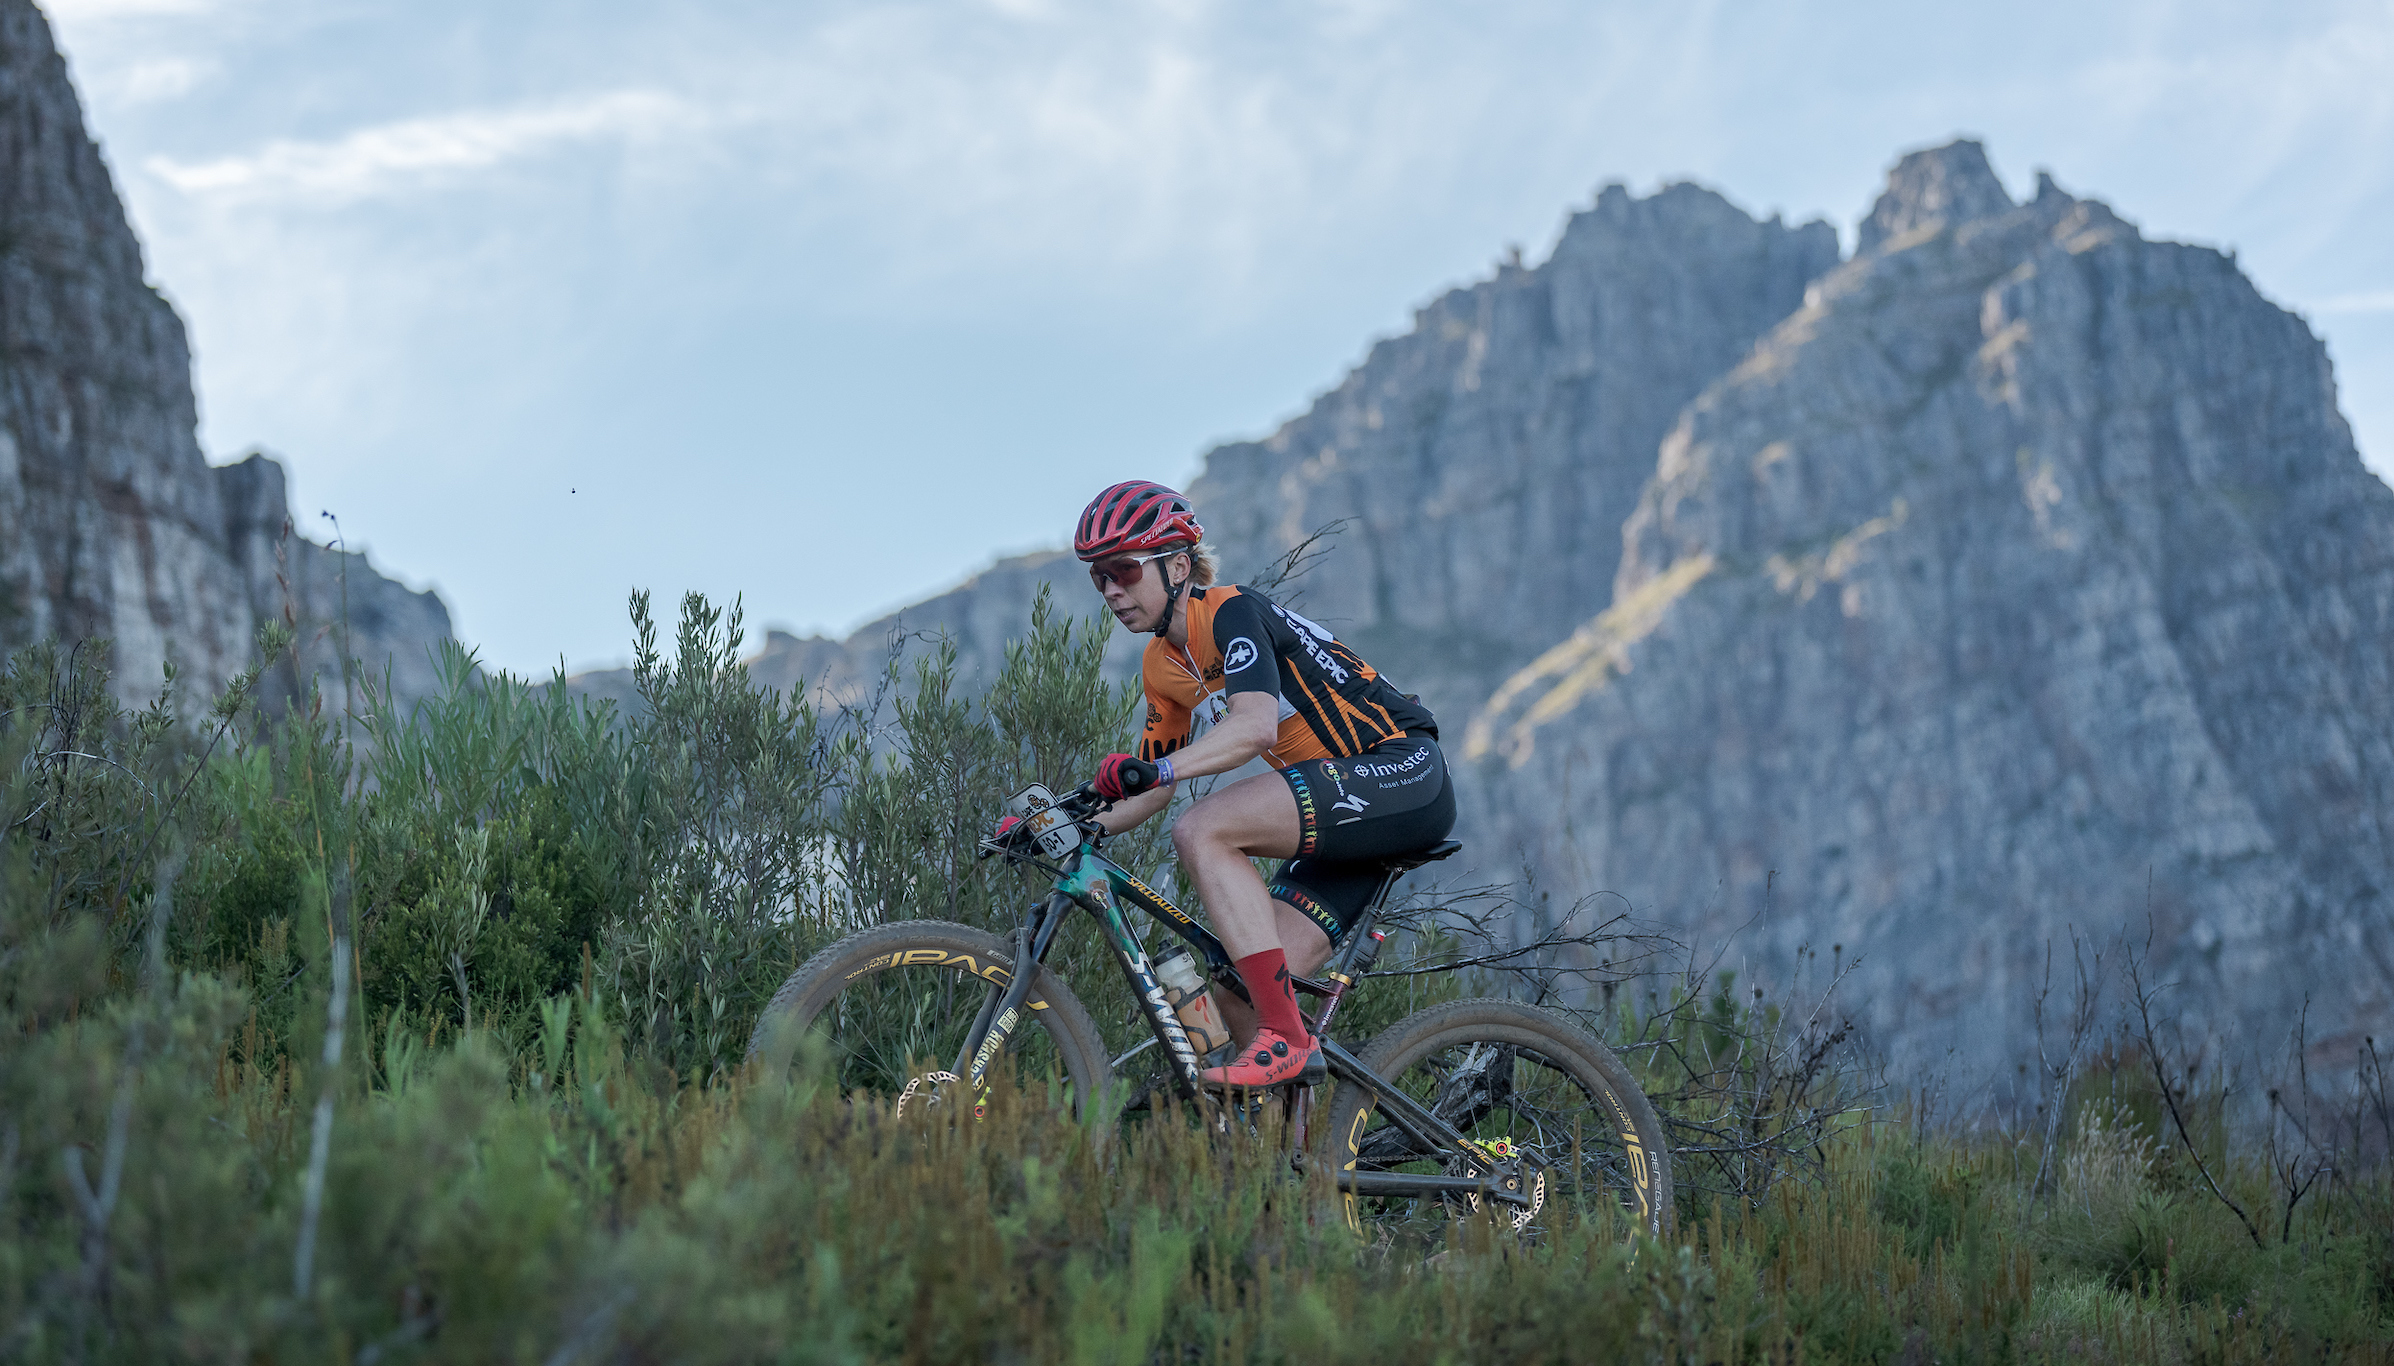 Annika-Langvad-returns-to-the-2020-Absa-Cape-Epic-she-will-race-with-Swedens-Jenny-Rissveds.-Photo-by-Xavier-Briel